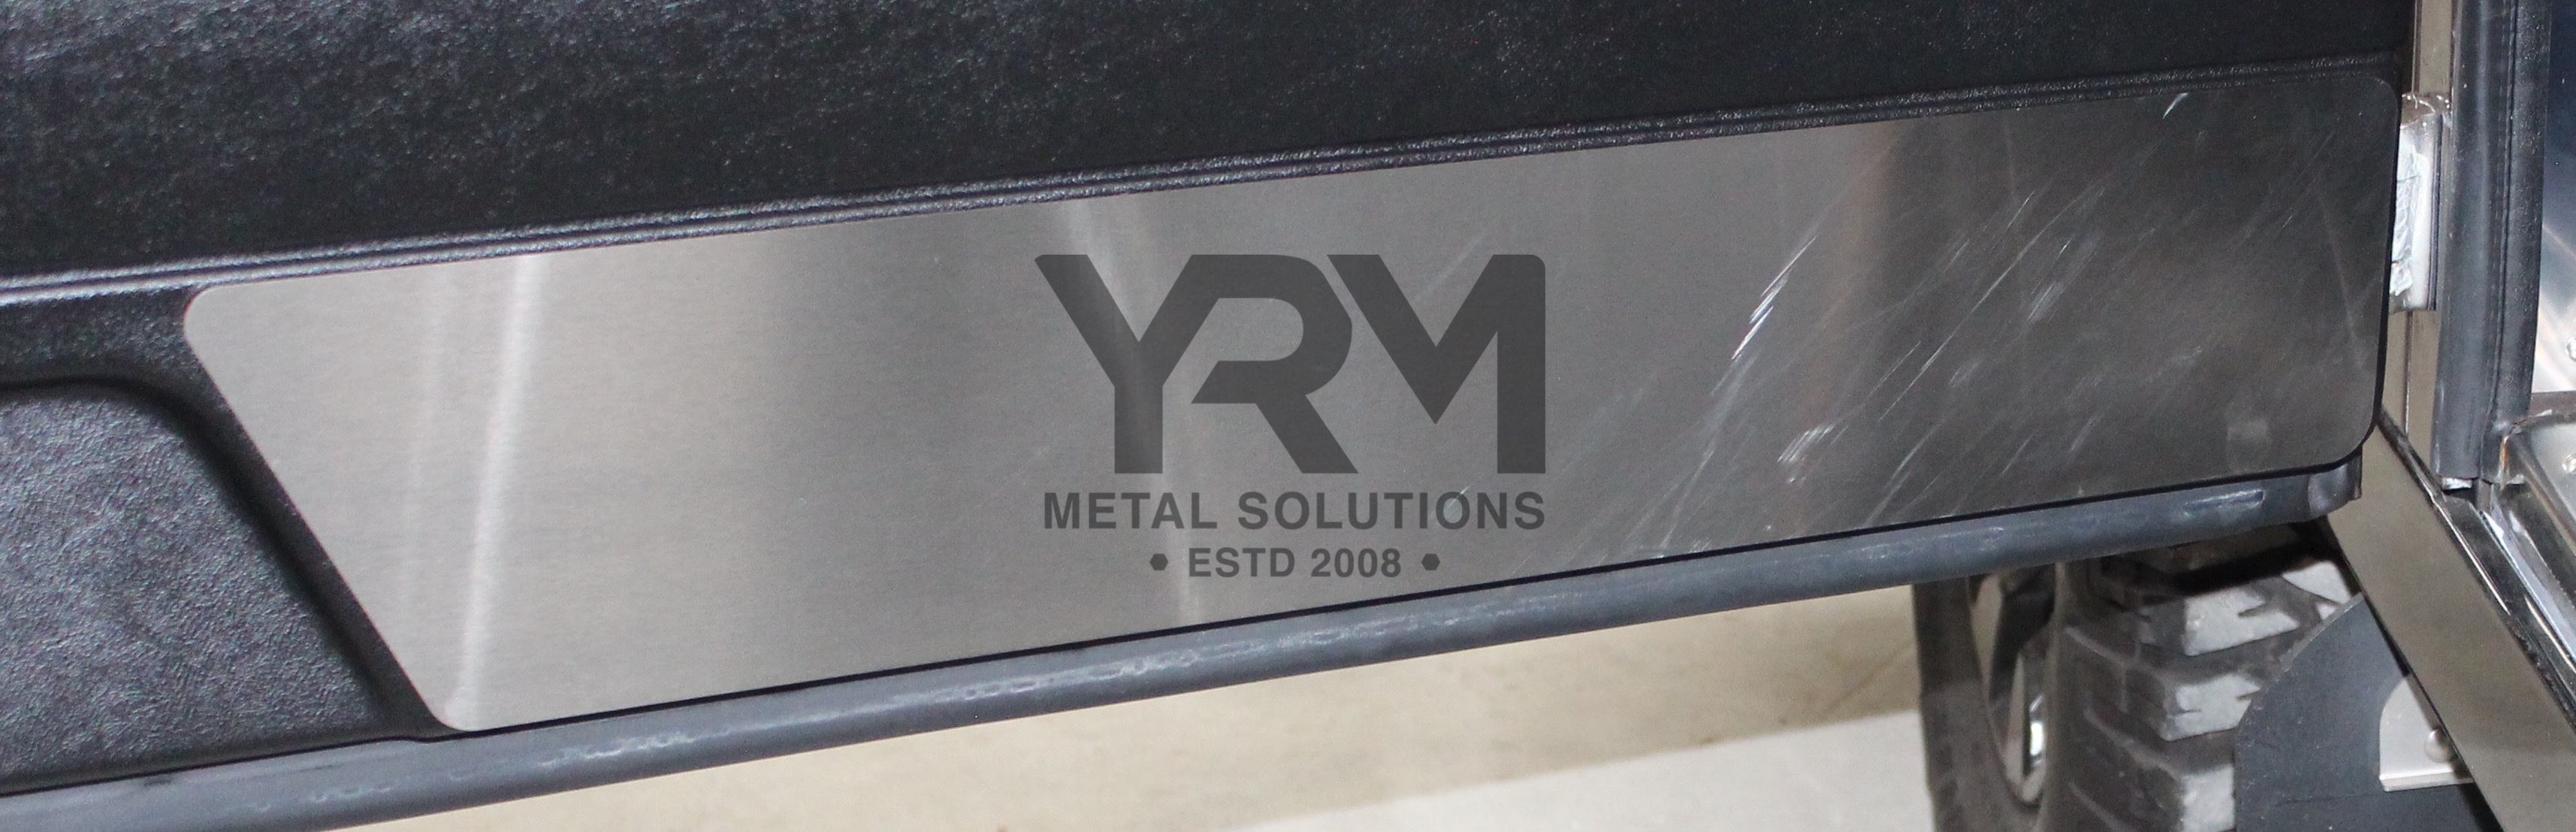 Stainless Steel Kick Plate Yrm Metal Solutions